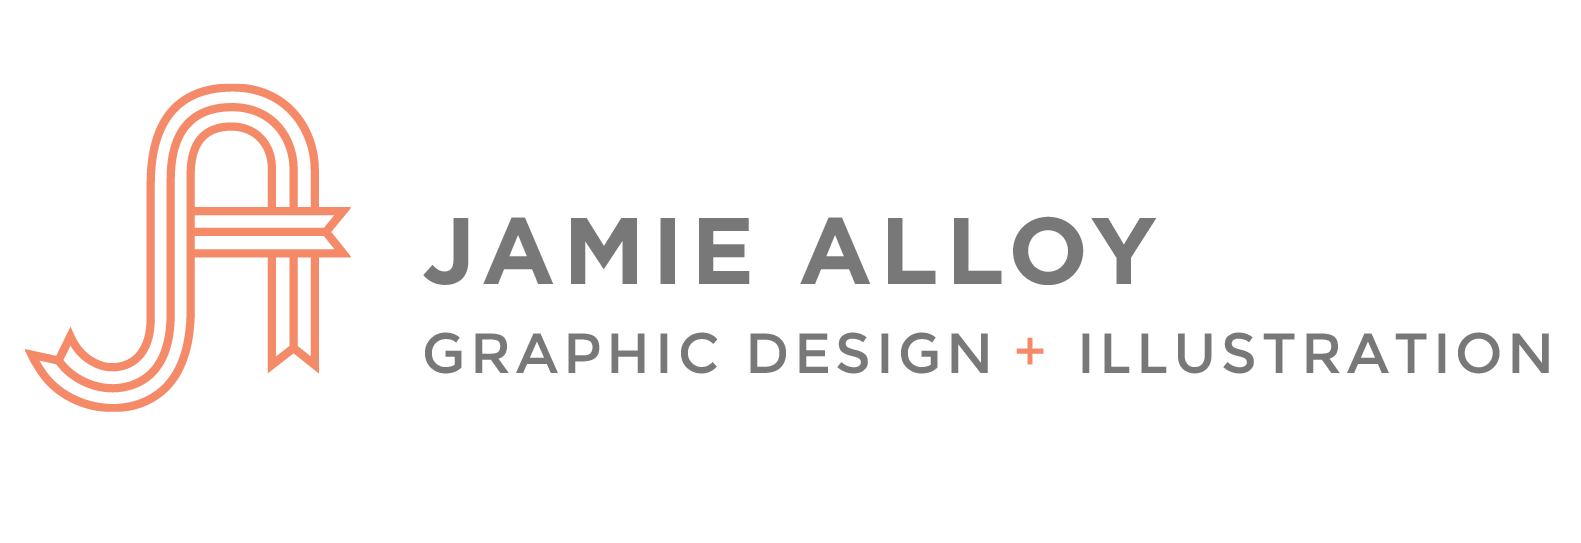 Jamie Alloy Design